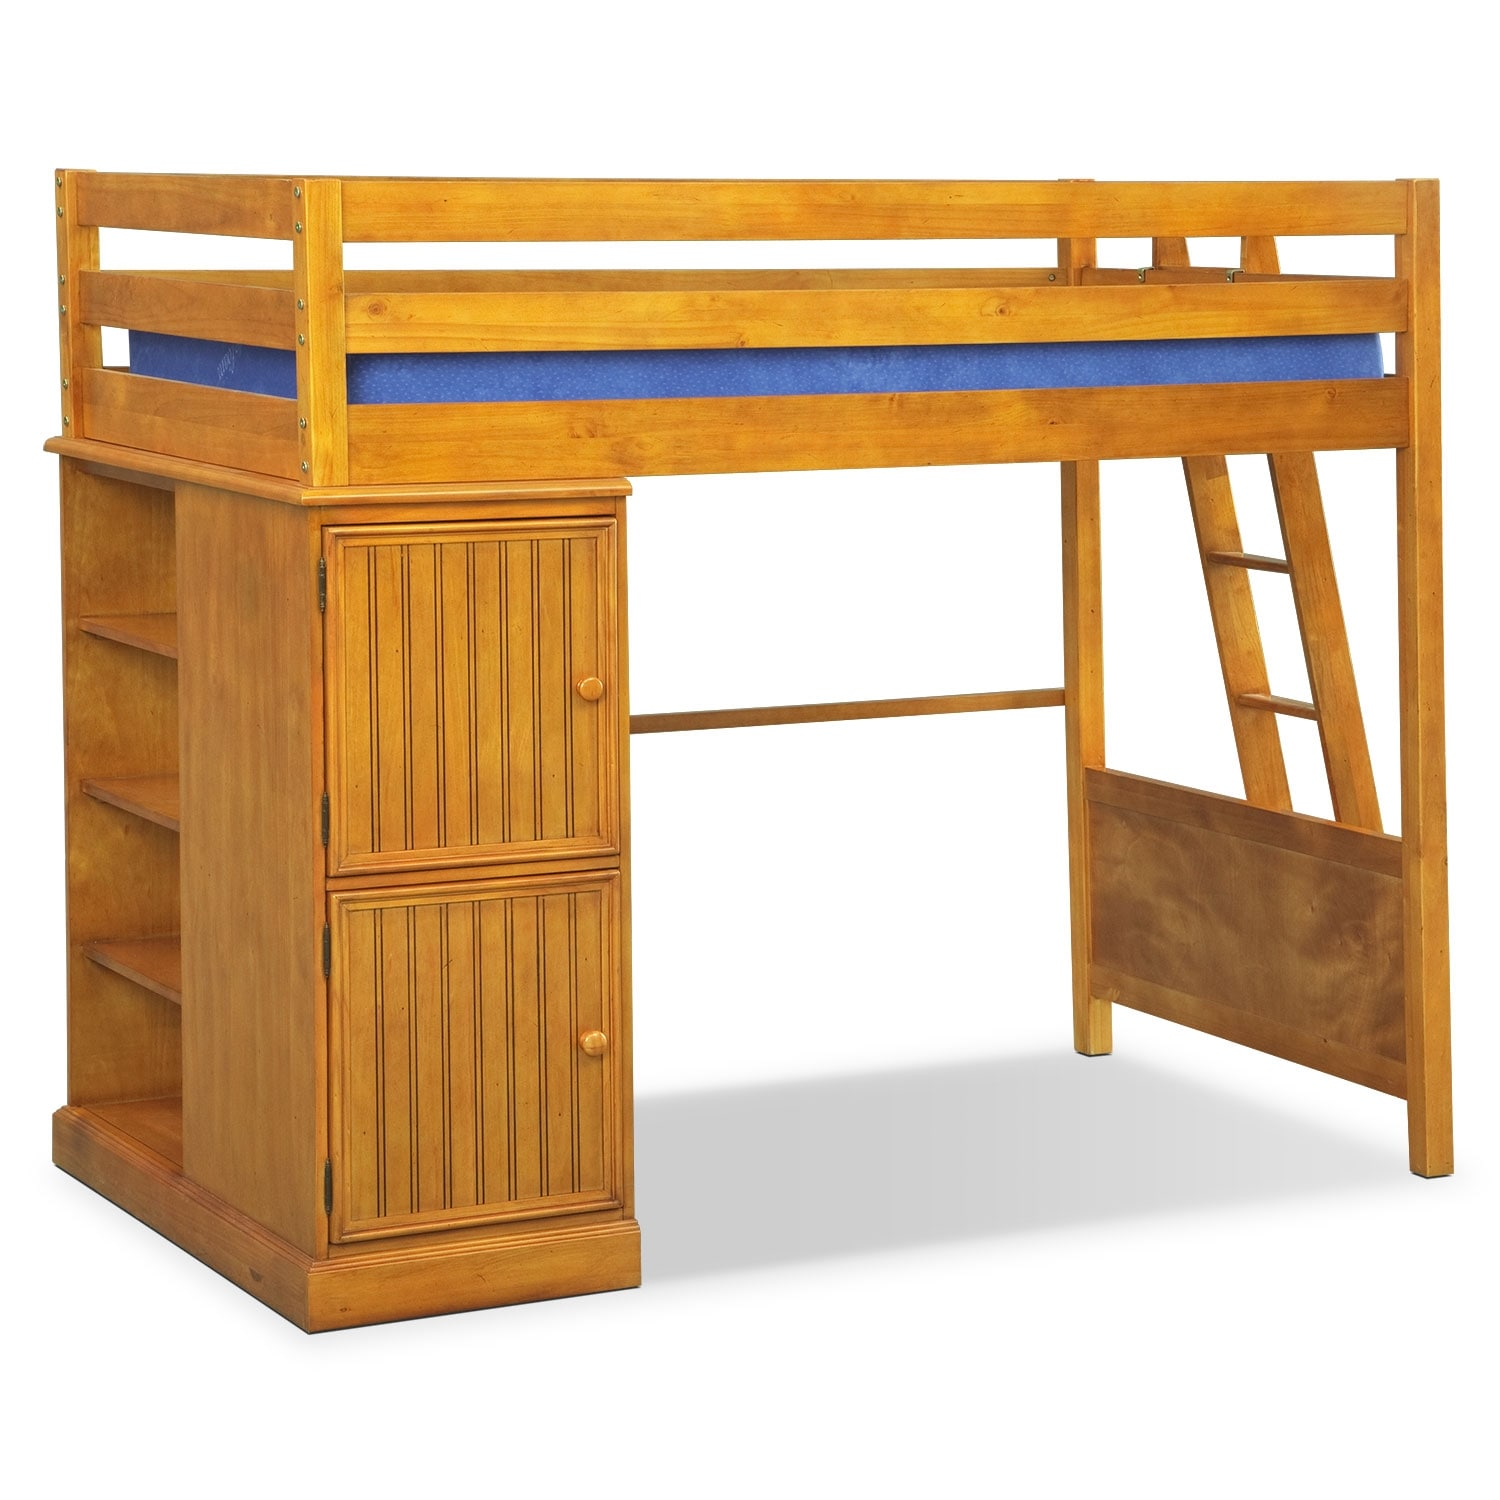 Colorworks Loft Bed - Honey Pine